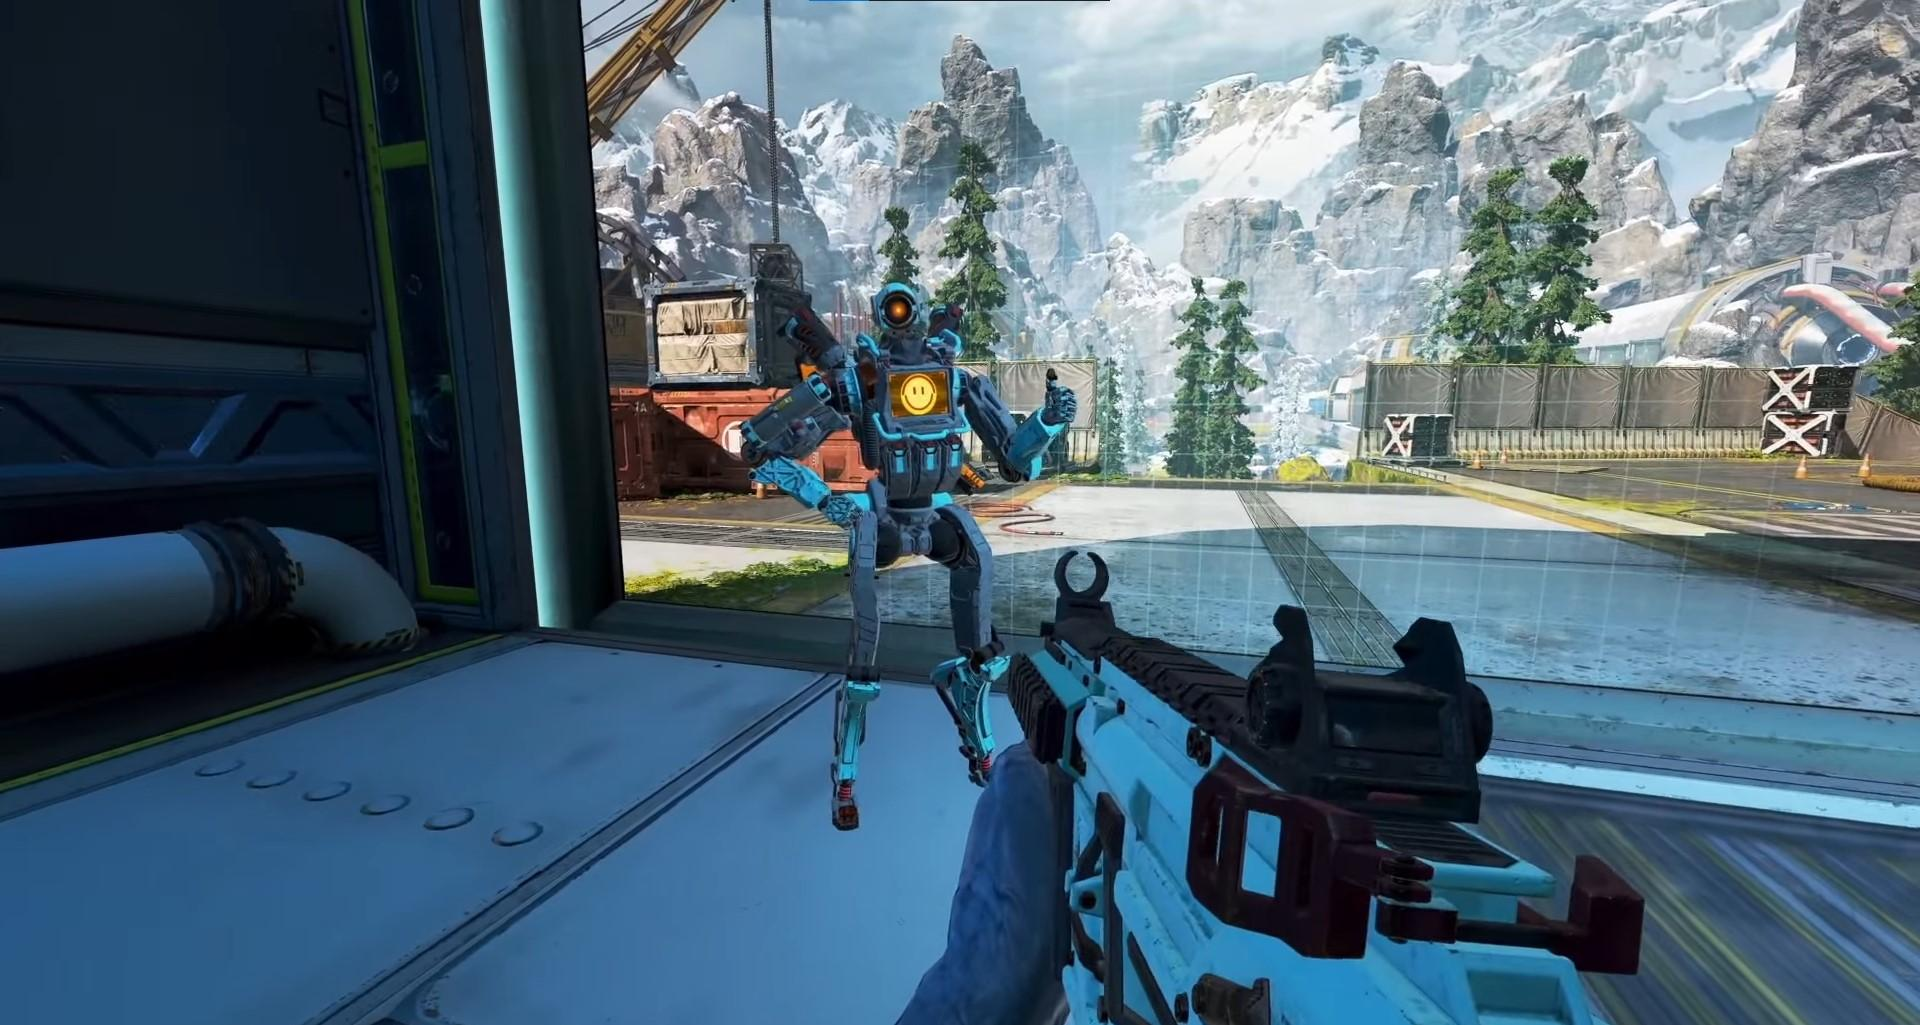 Work with your squad and be the last team standing in Apex Legends